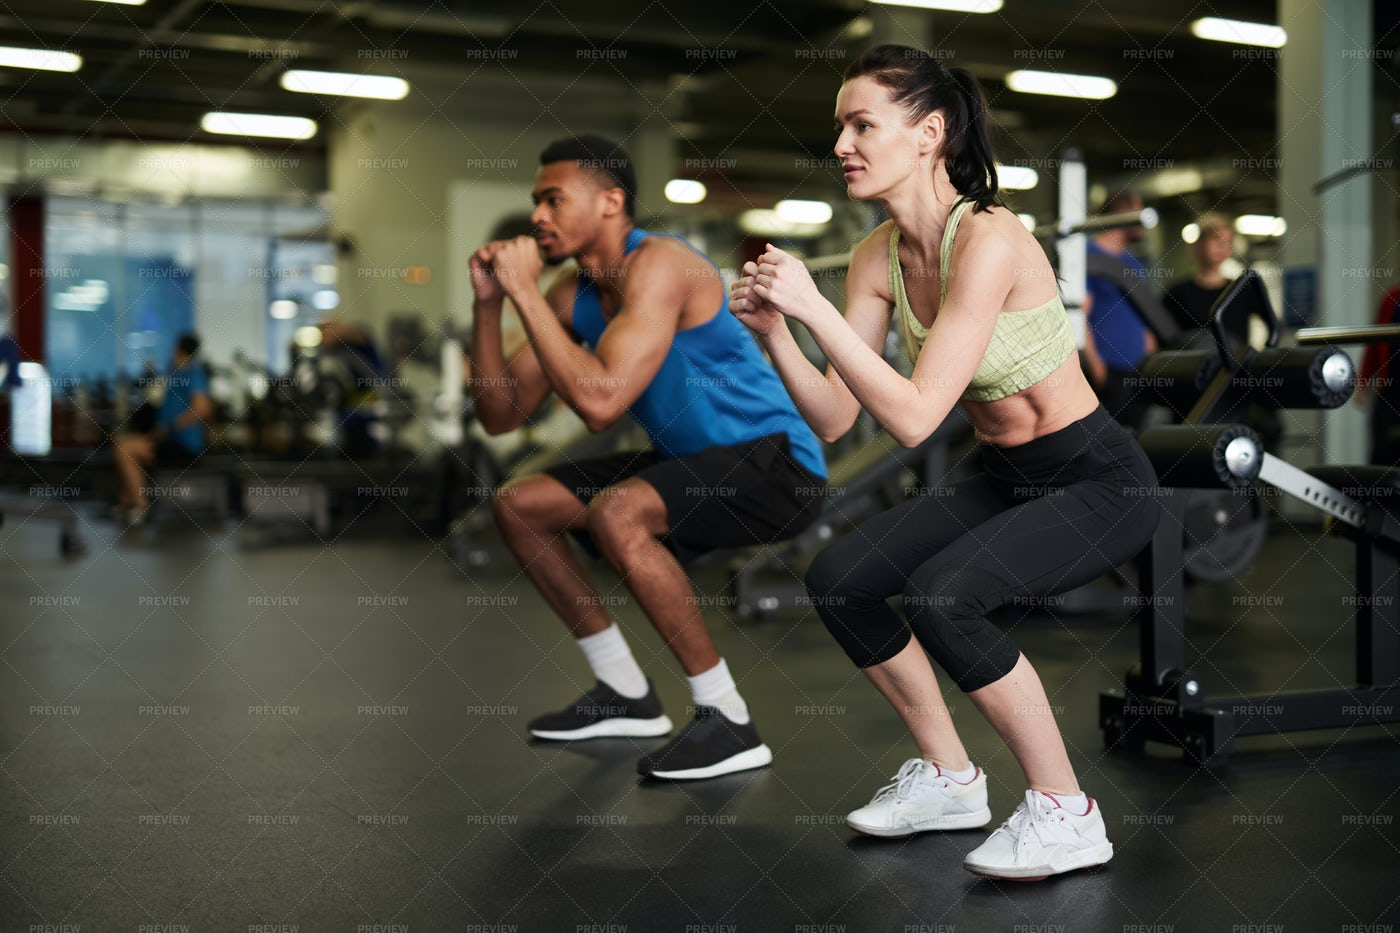 Sportive Couple Working Out: Stock Photos